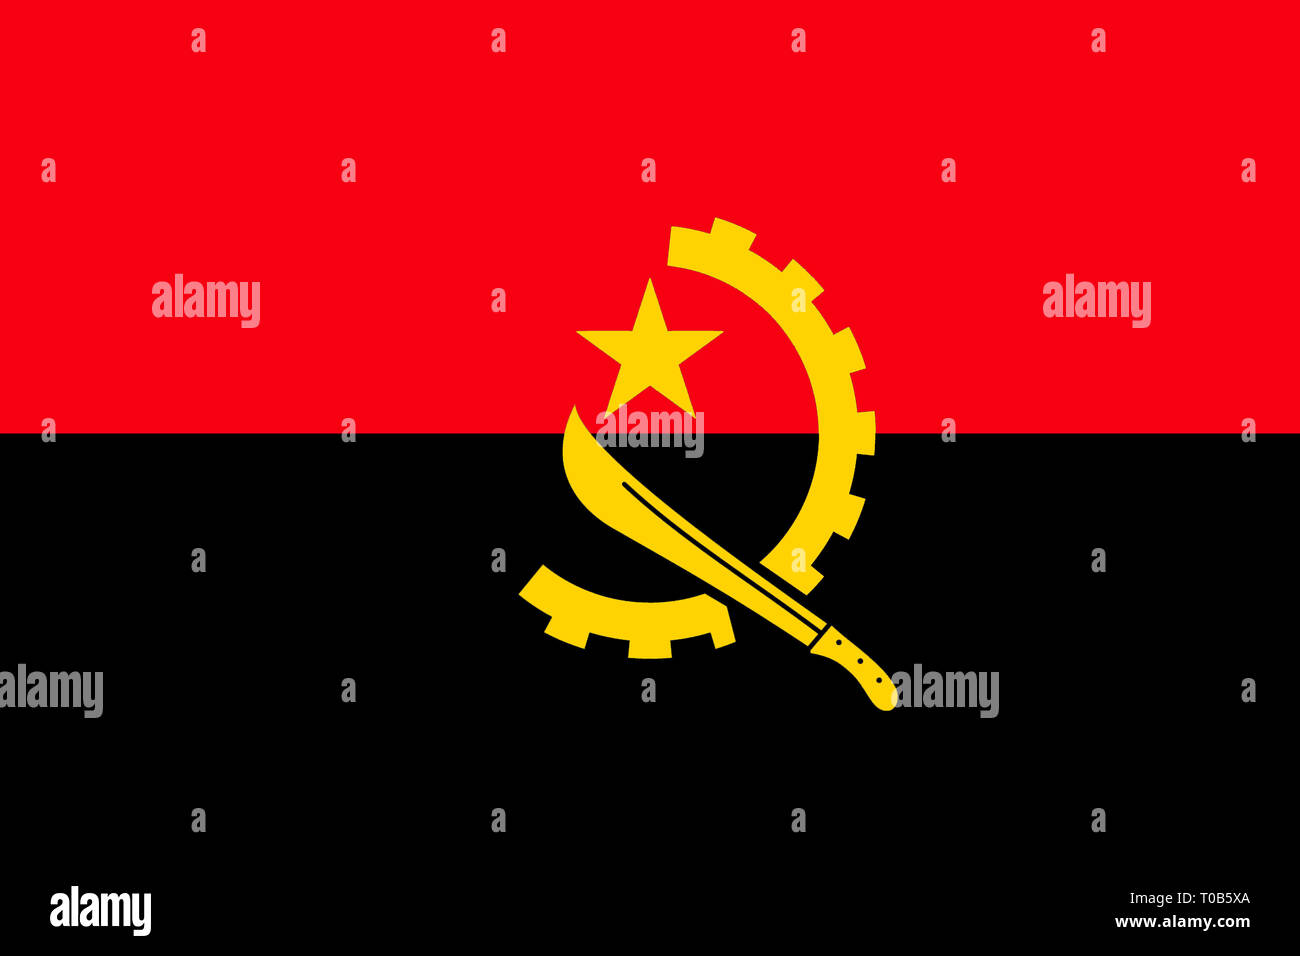 National flag of the Republic of Angola. - Stock Image